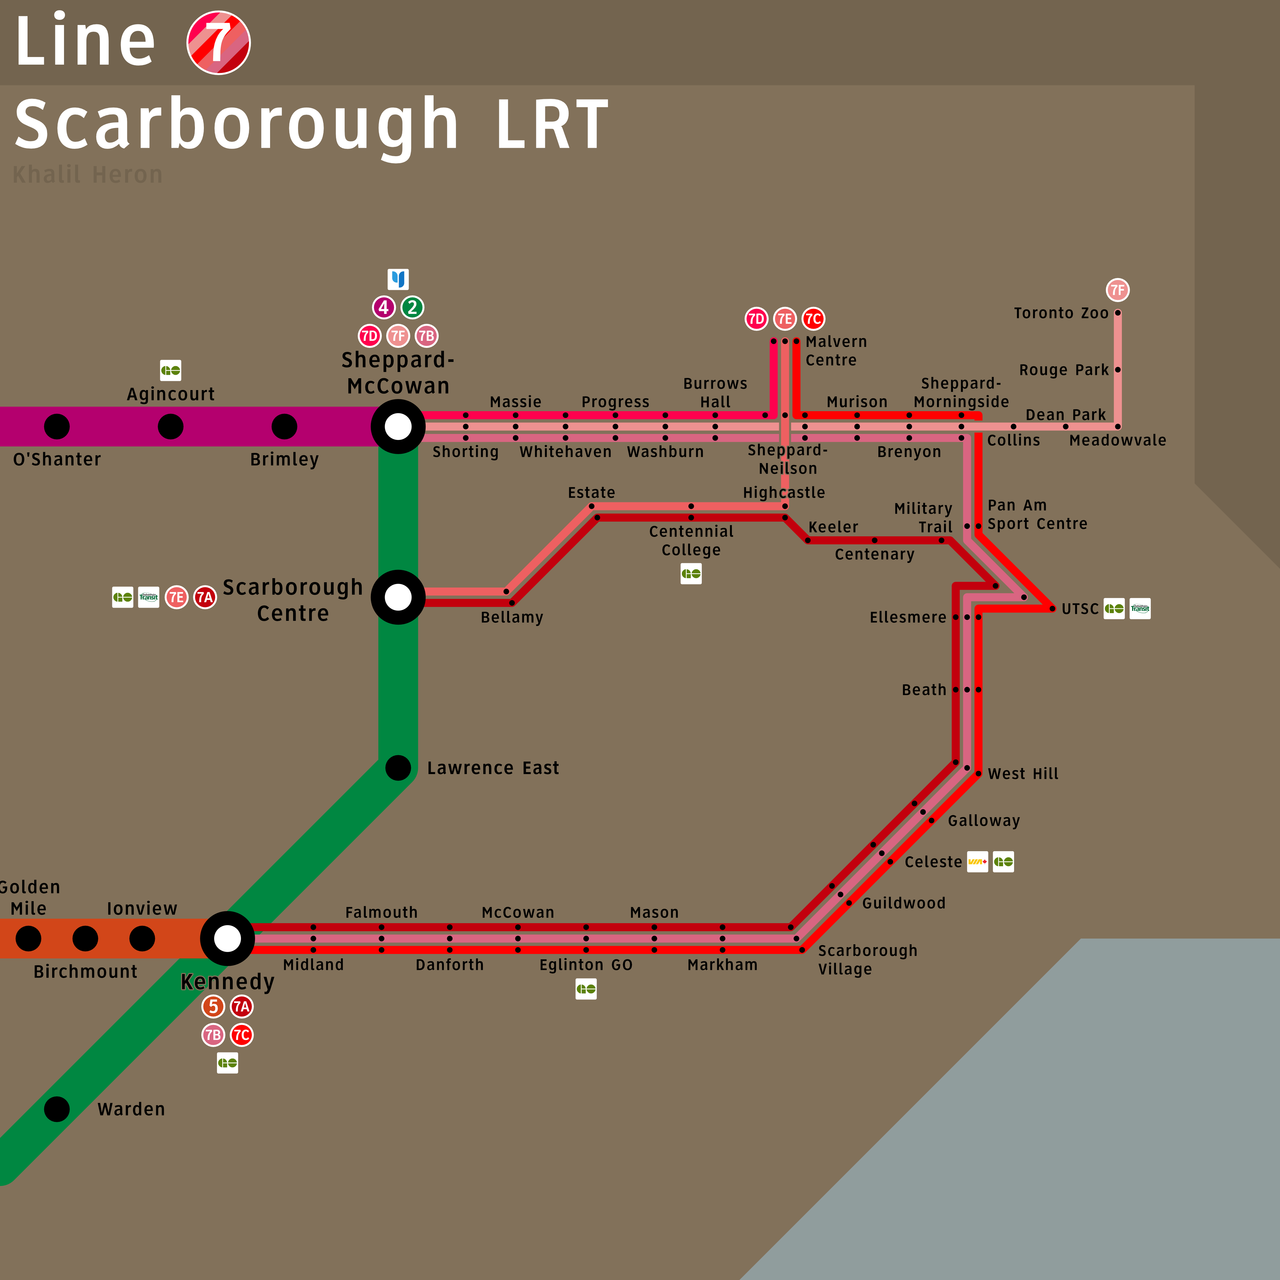 Line 7 Scarborough LRT map.png